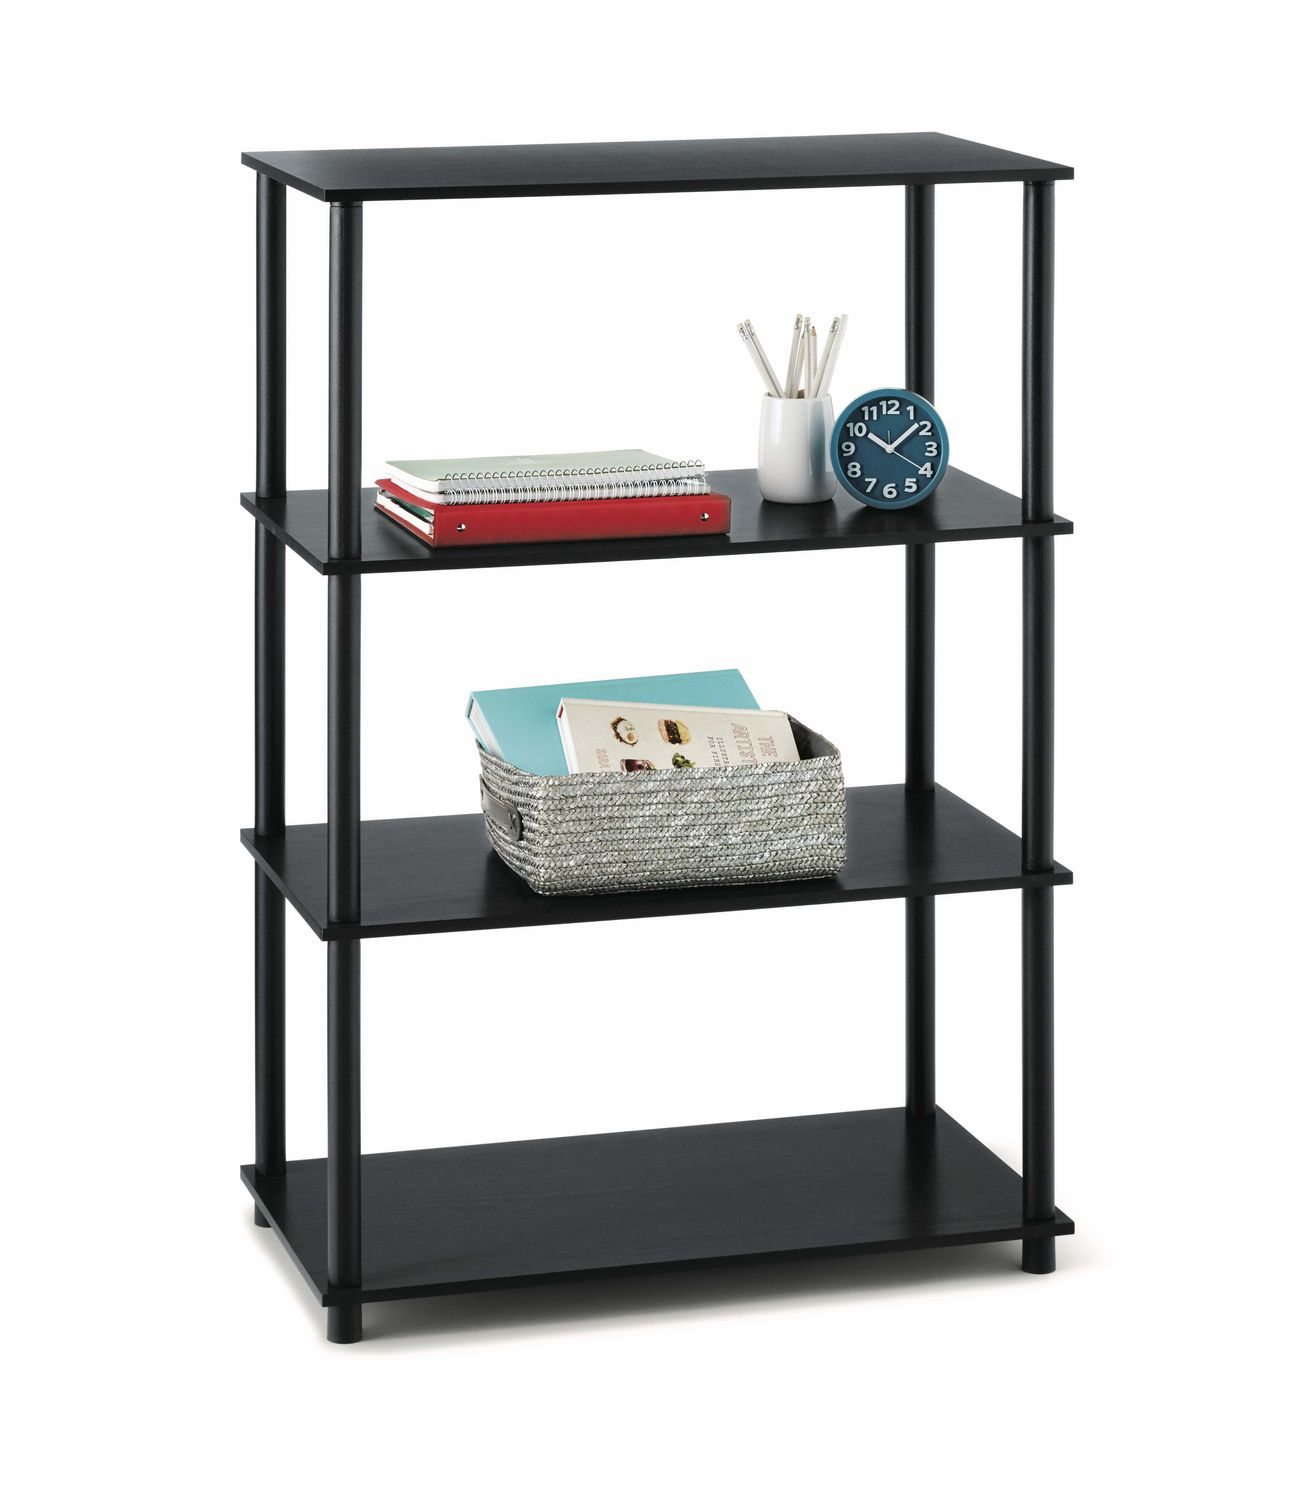 Cubby Shelves Walmart | Walmart Shelving | Cheap Bookshelves Walmart